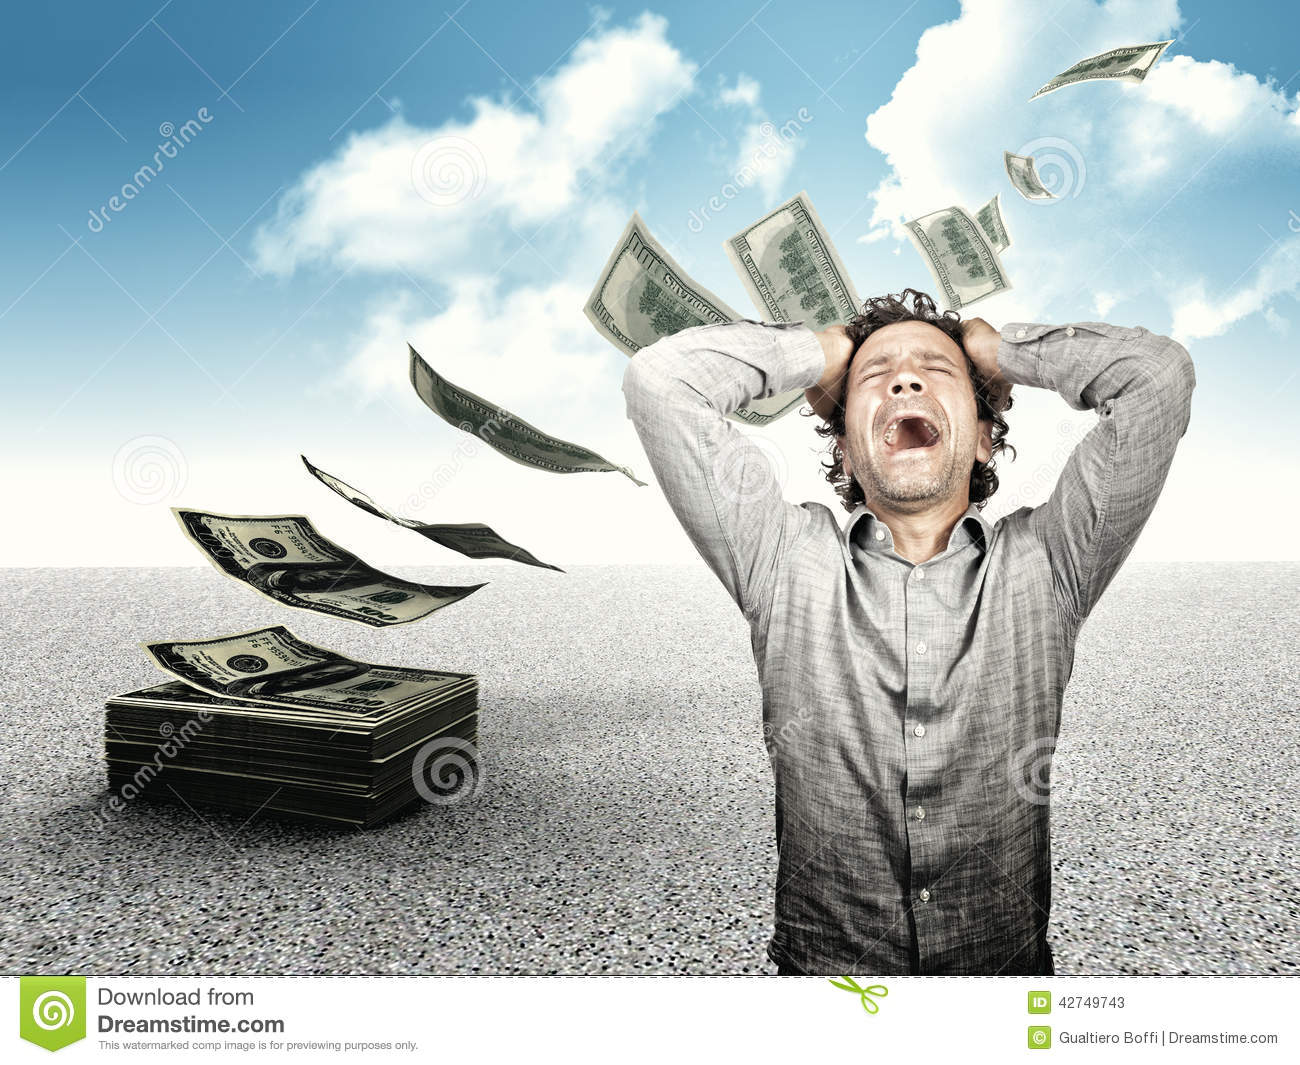 Lost All My Money Stock Photo - Image: 42749743